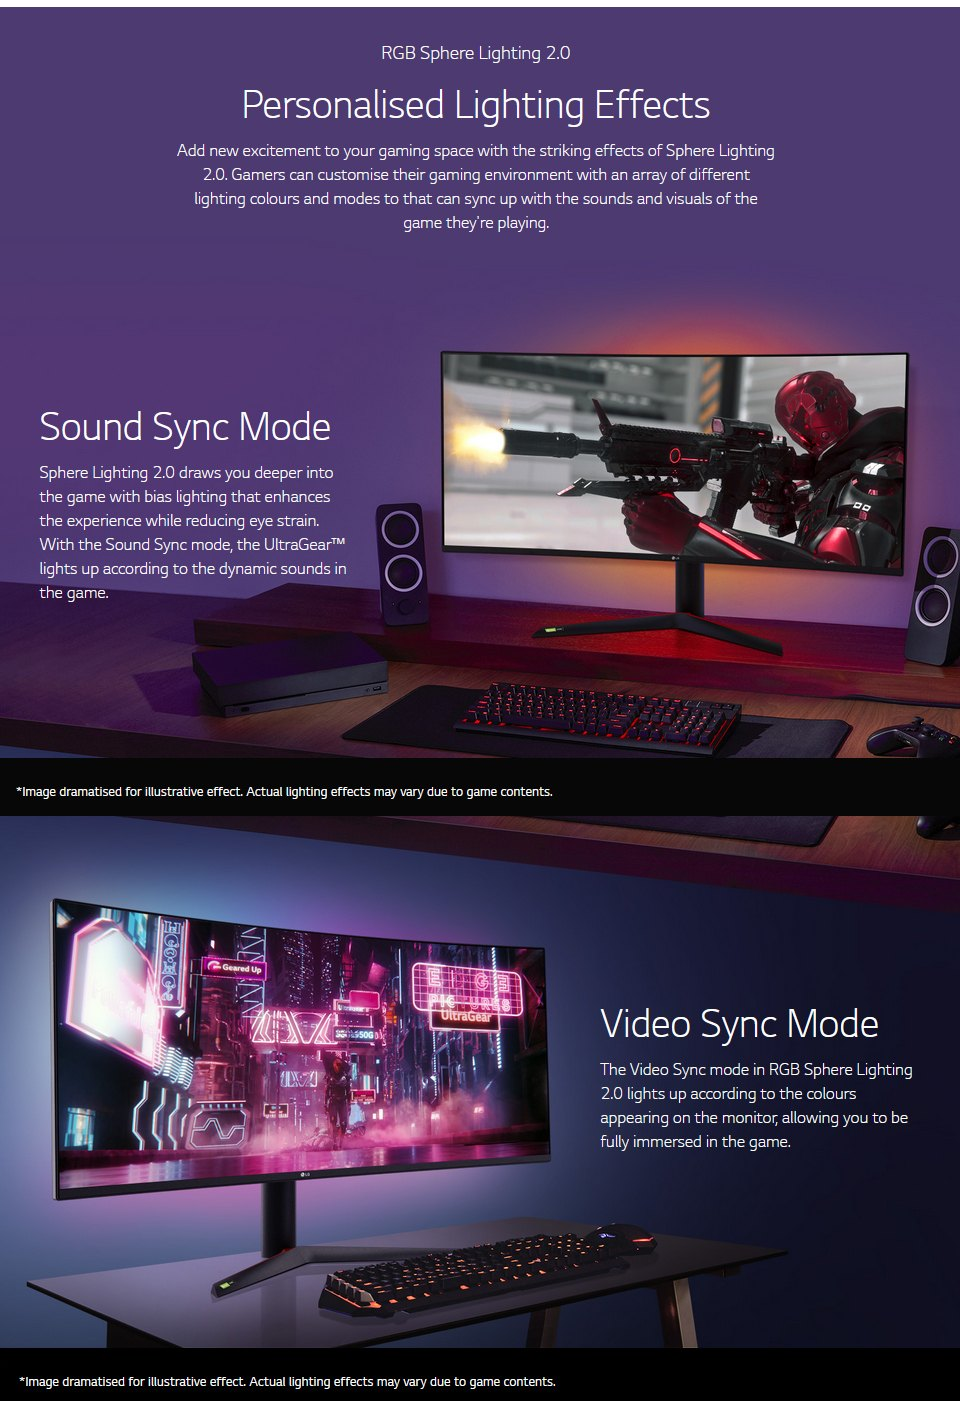 LG 38GL950G-B QHD+ 144Hz G-Sync HDR 38in Monitor features 5